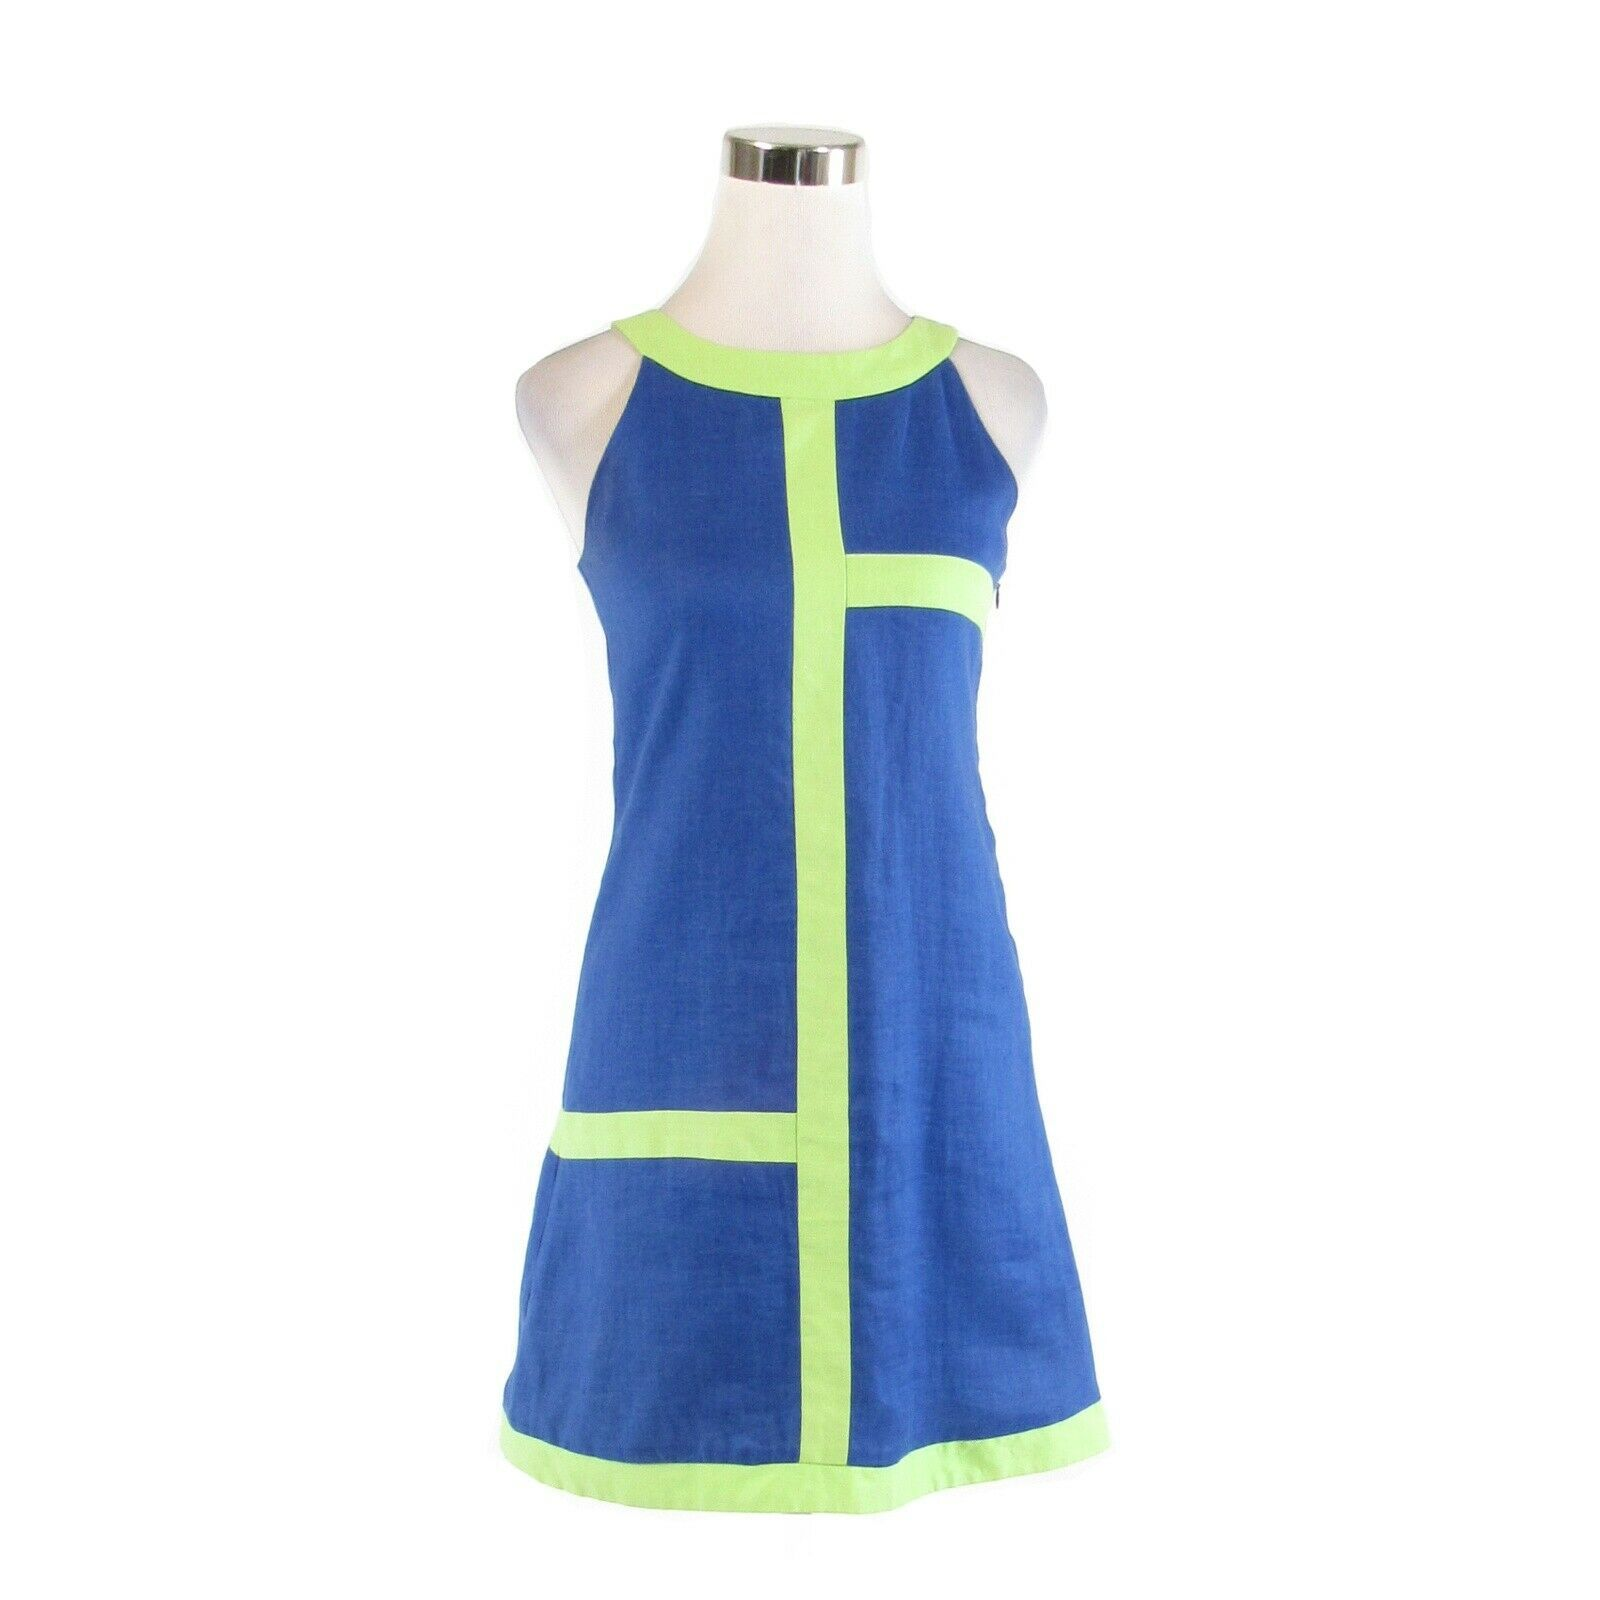 Primary image for Blue green color block linen FLORENCE EISEMAN sleeveless vintage dress 16 S